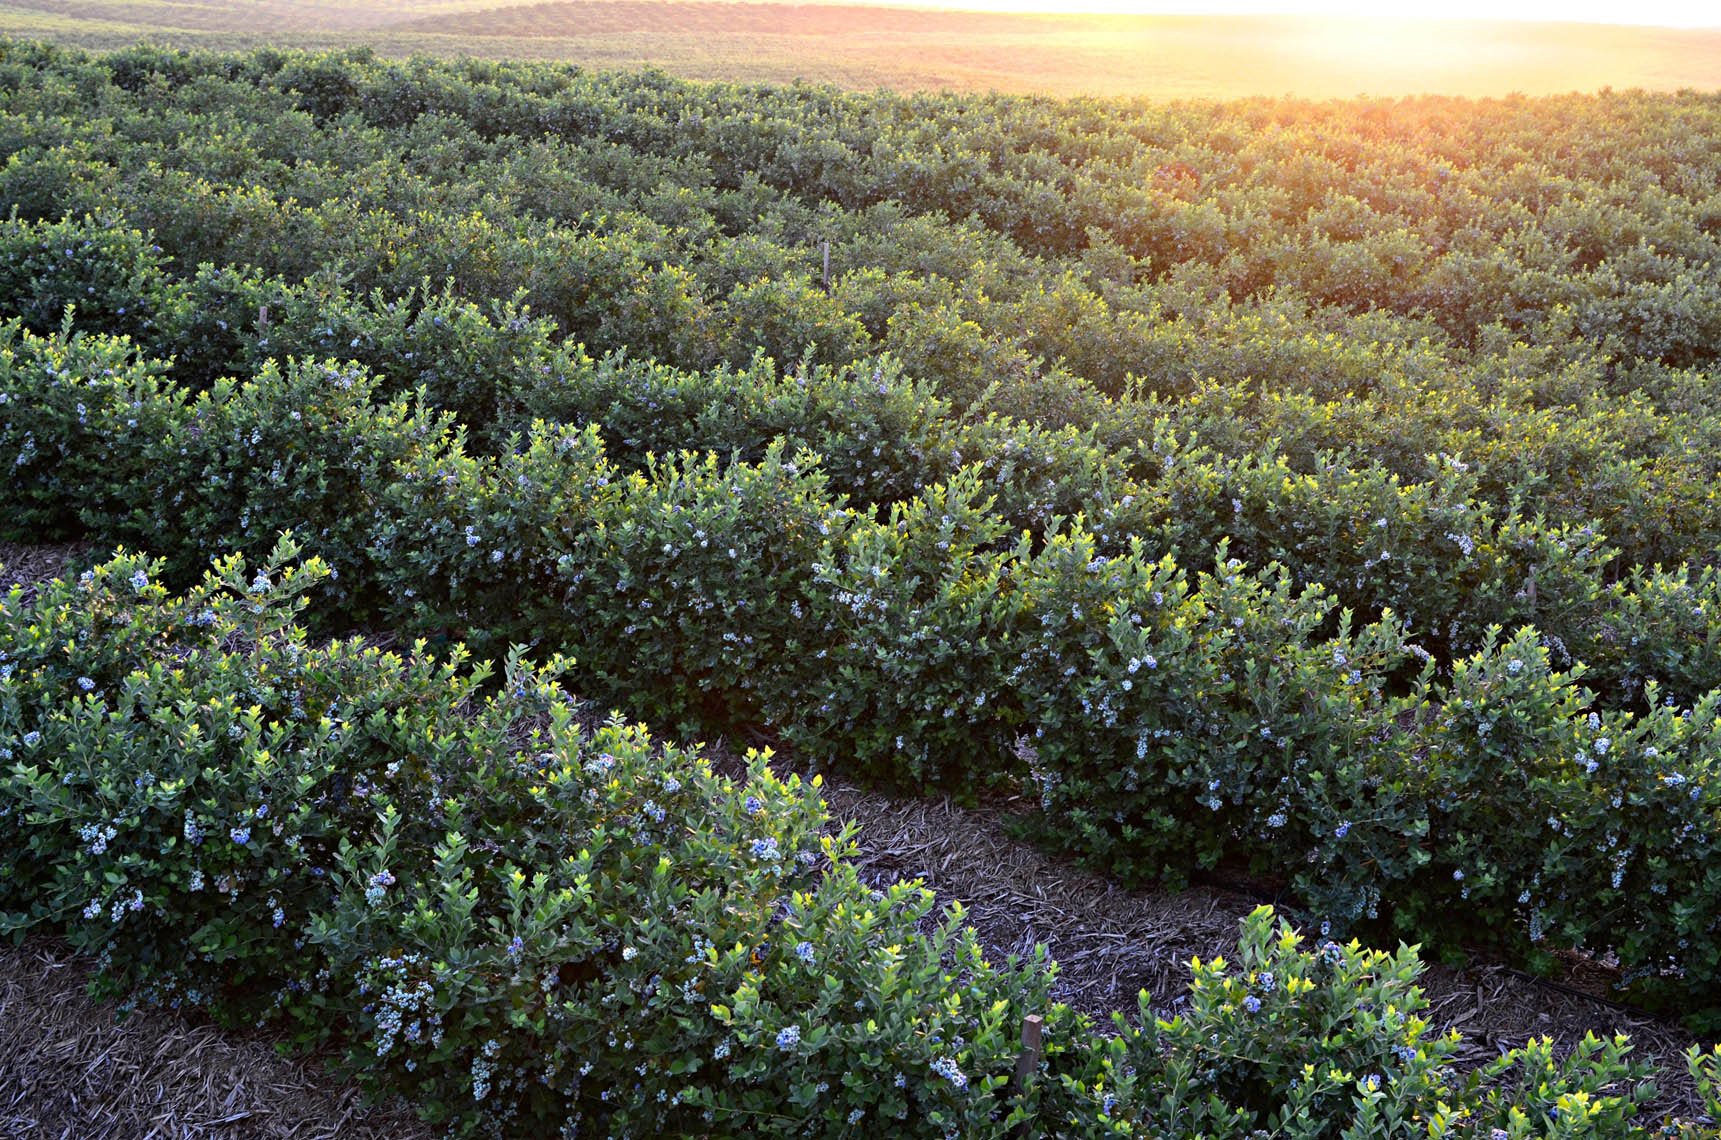 Blueberry-farm-at-sunrise-by-farming-photographer-Joe-Atlas.